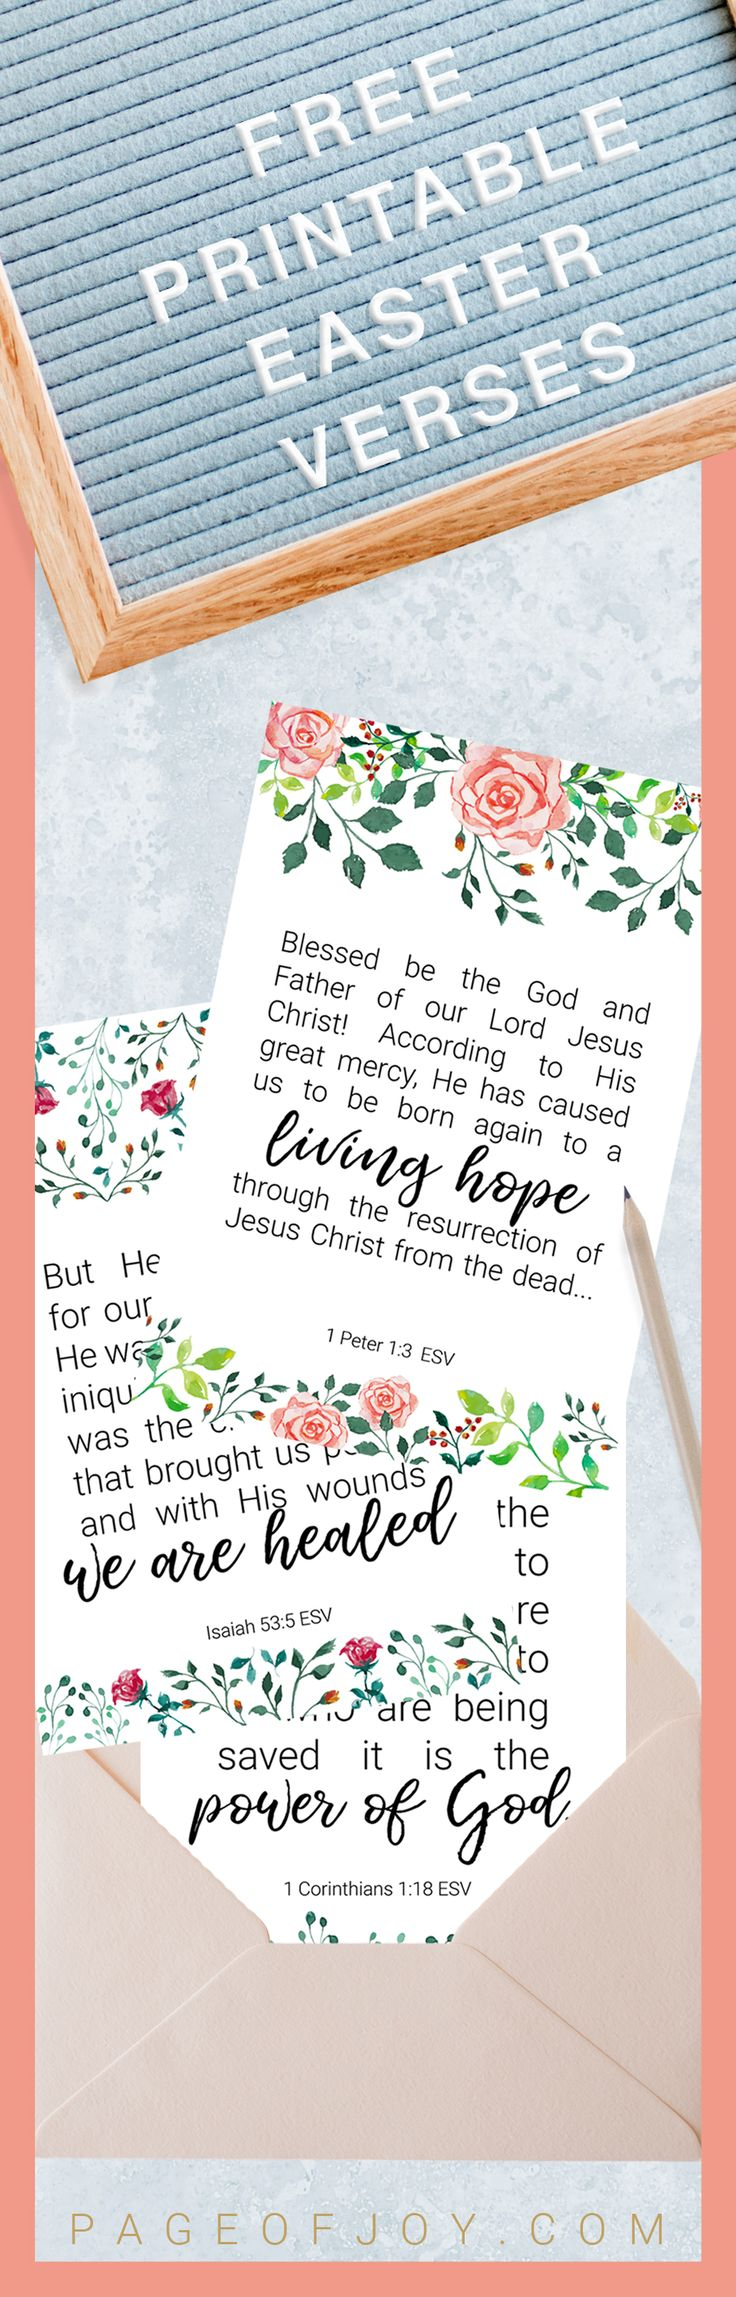 55 Best Page Of Joy Printables Images On Pinterest Bible Bible